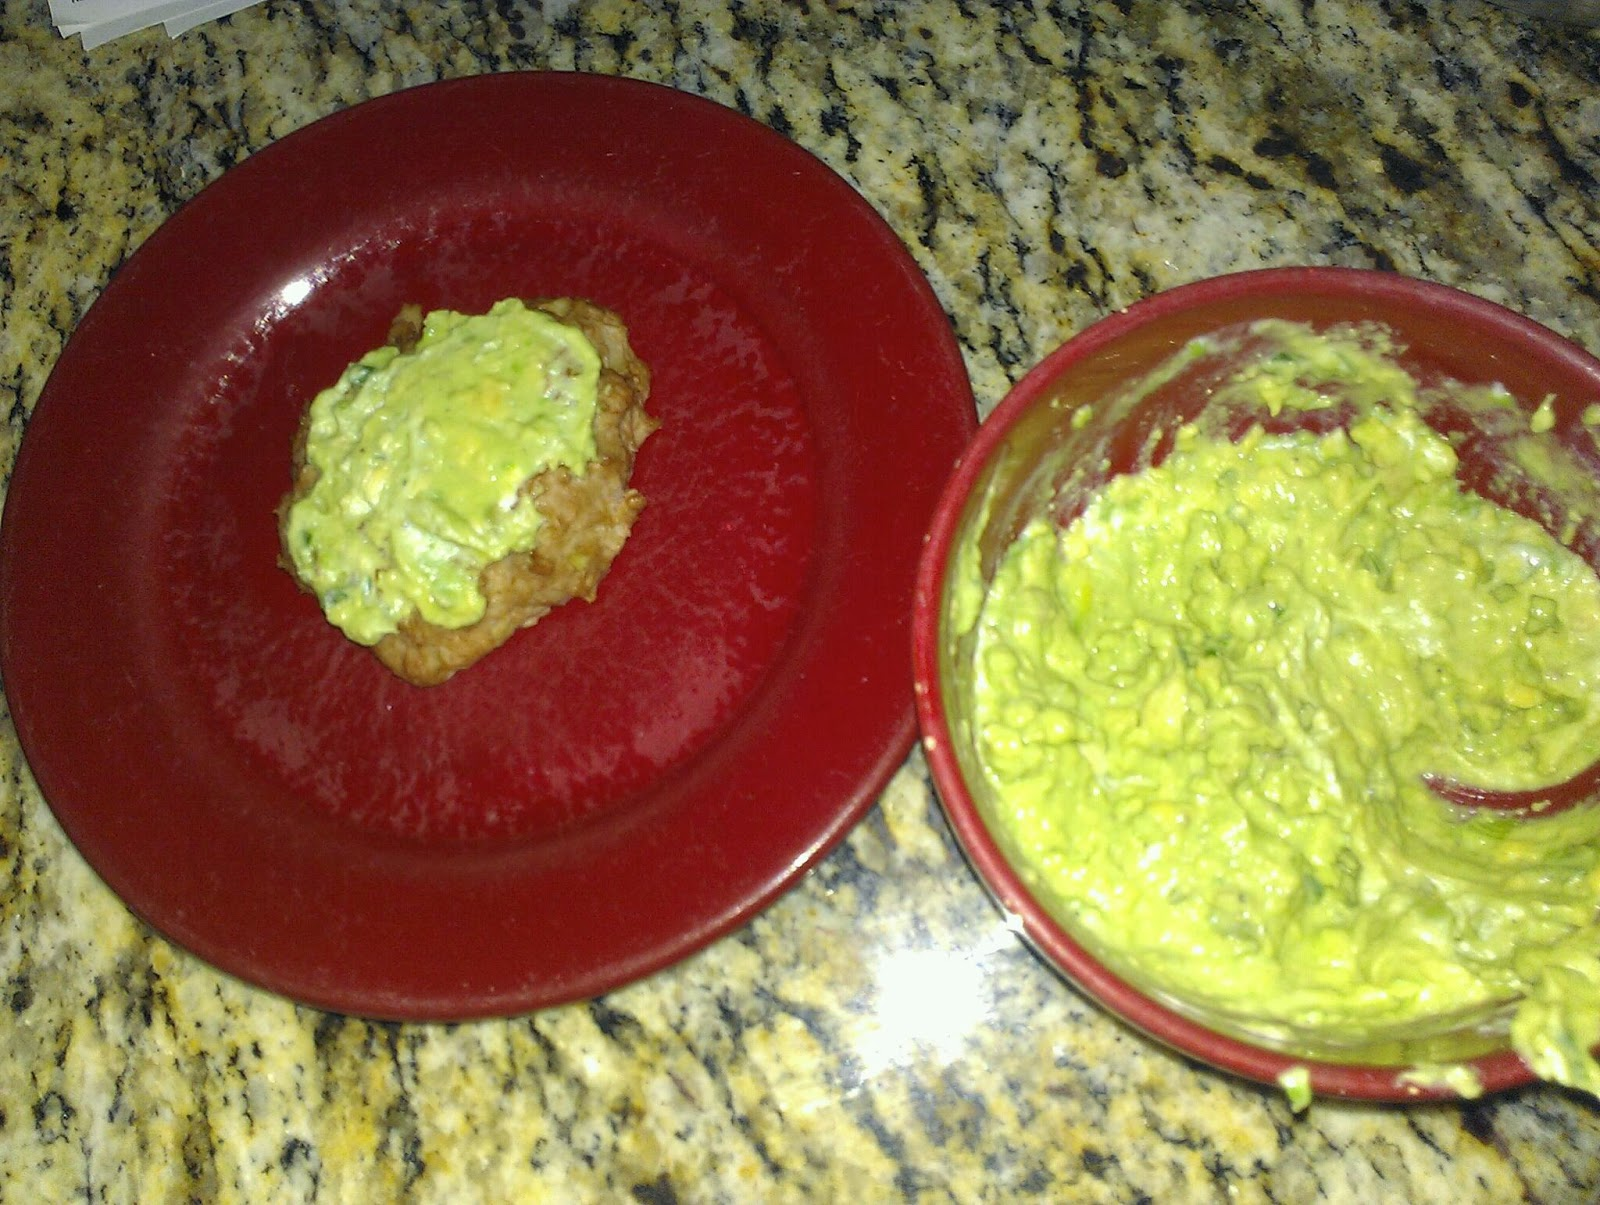 ... herbed avocado spread on the left and herb avocado spread on the right